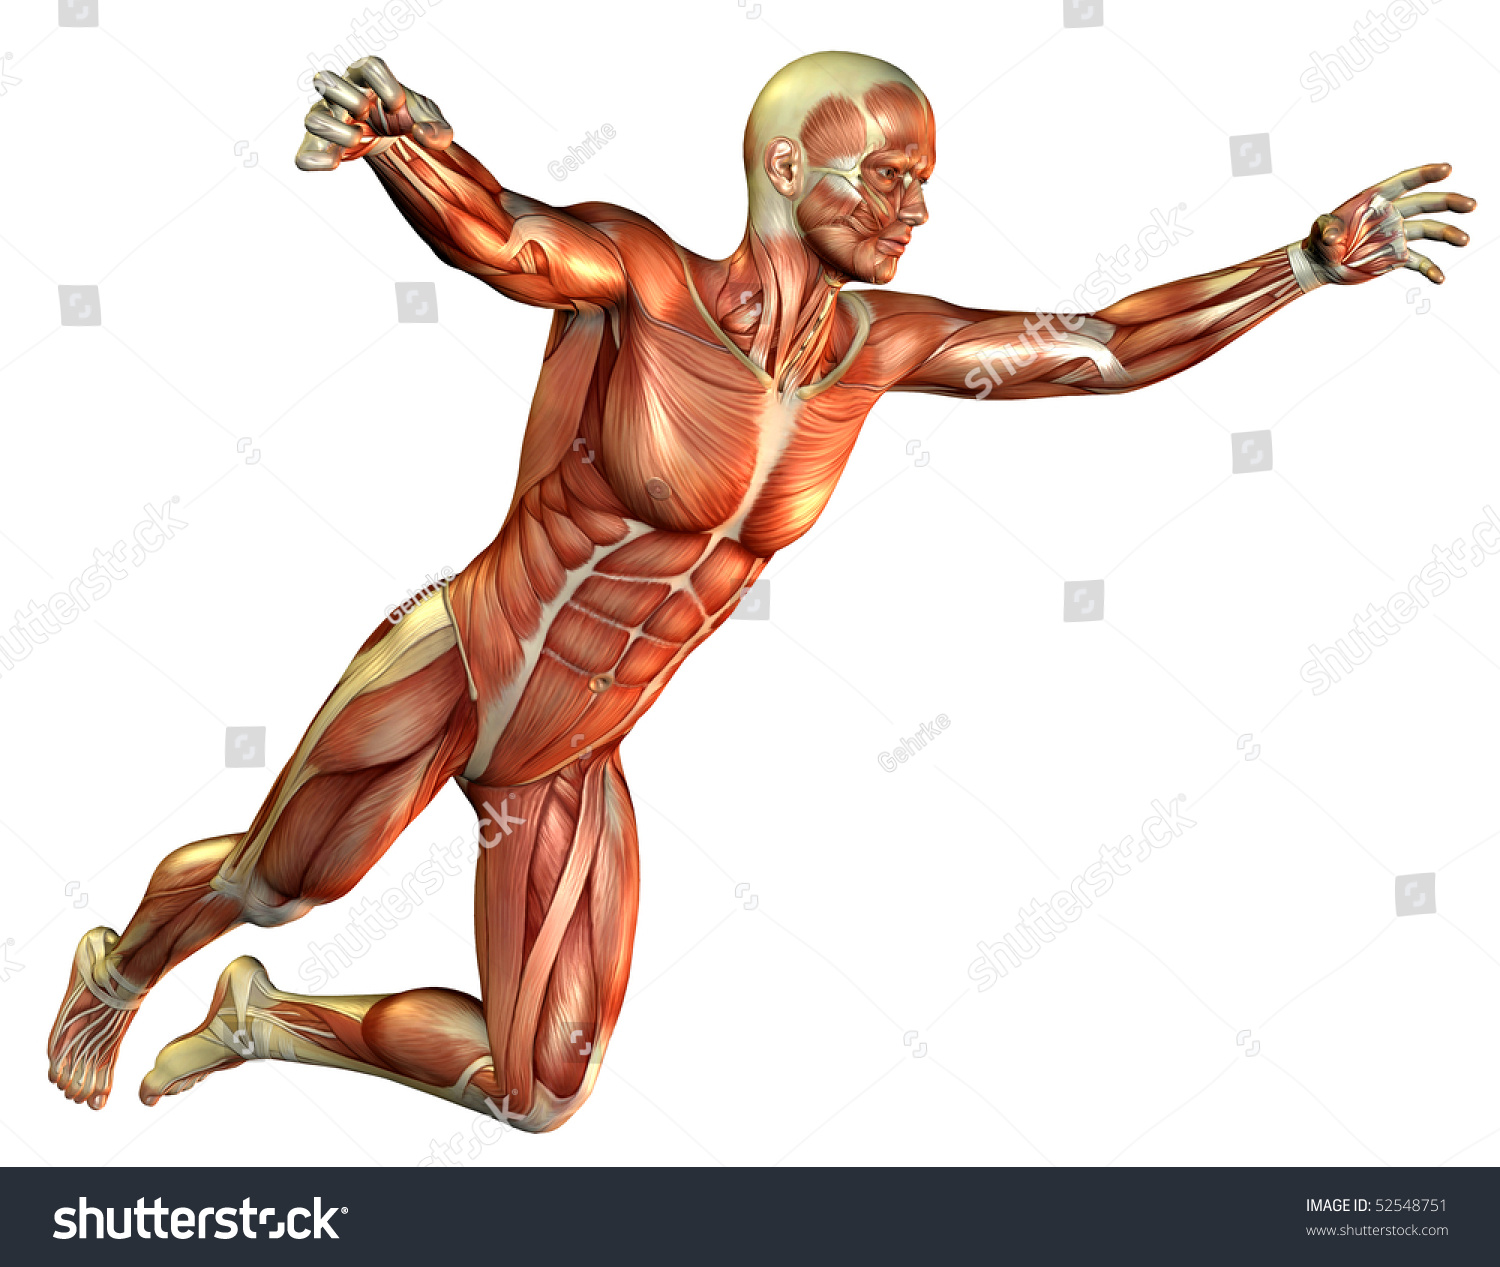 study muscle man jumping stock illustration 52548751 - shutterstock, Muscles